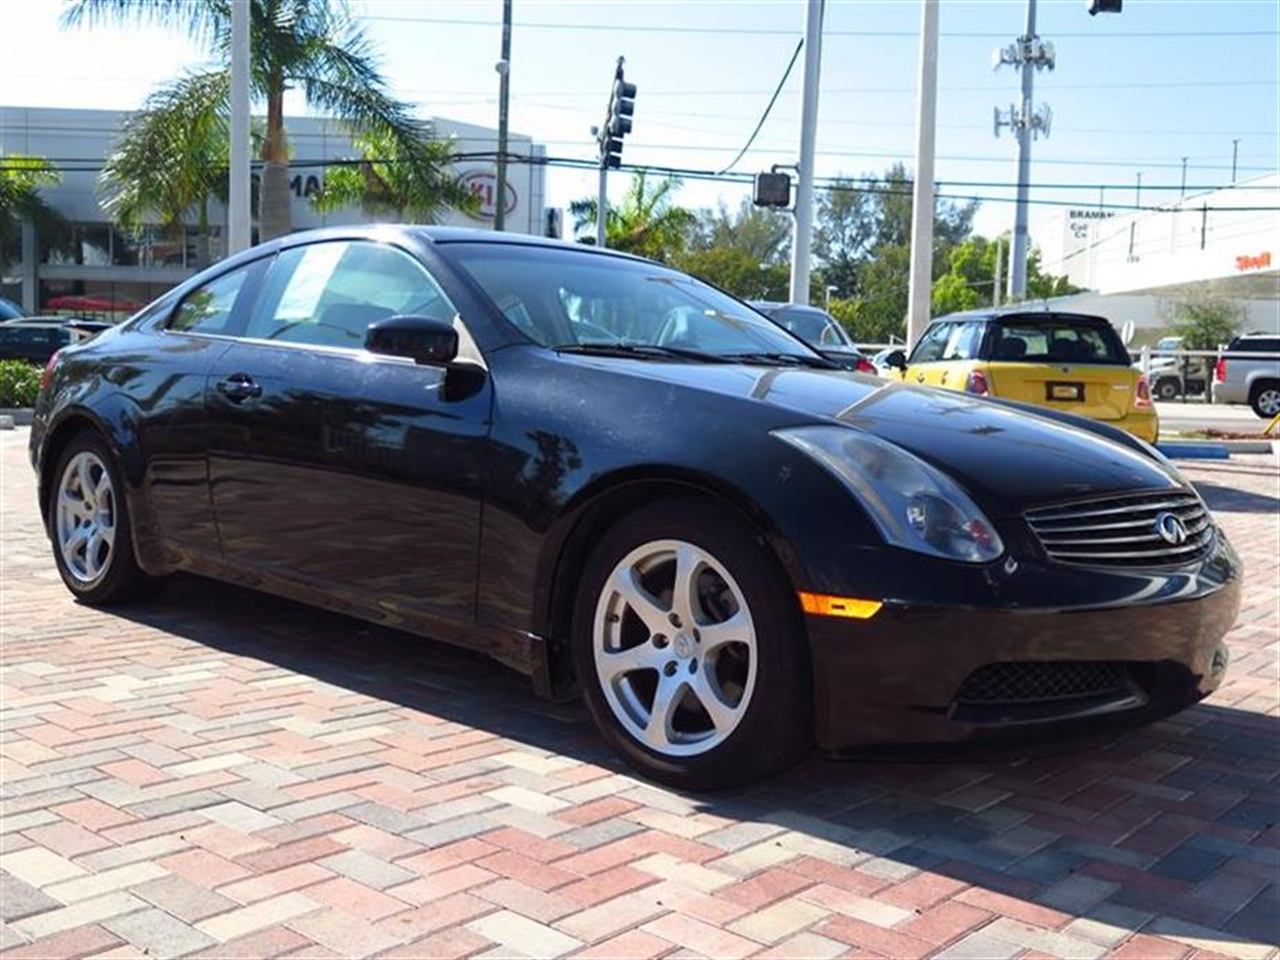 2005 INFI G35 2dr Cpe Auto 43182 miles 8-way driver4-way passenger front bucket heated pwr seats